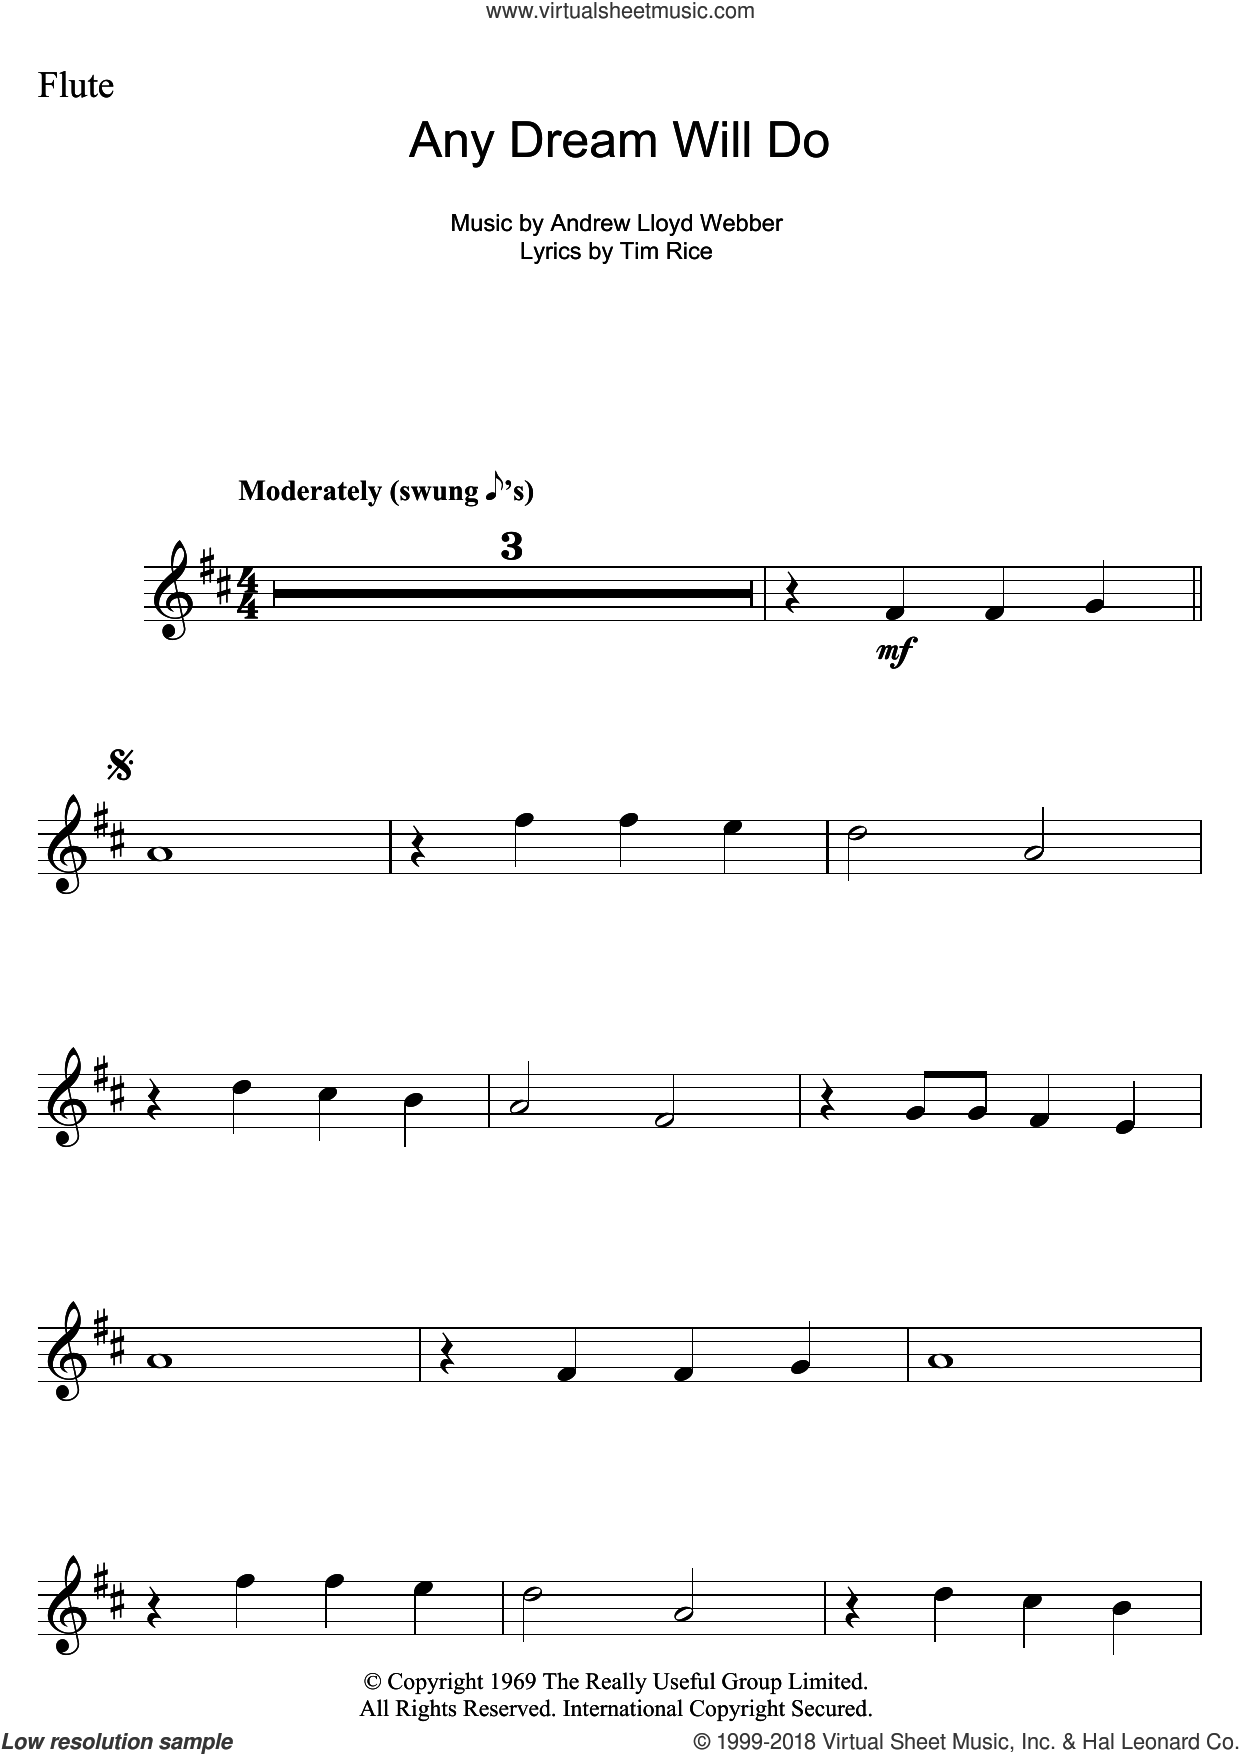 Any Dream Will Do (from Joseph And The Amazing Technicolor Dreamcoat) sheet music for flute solo by Andrew Lloyd Webber and Tim Rice, intermediate skill level